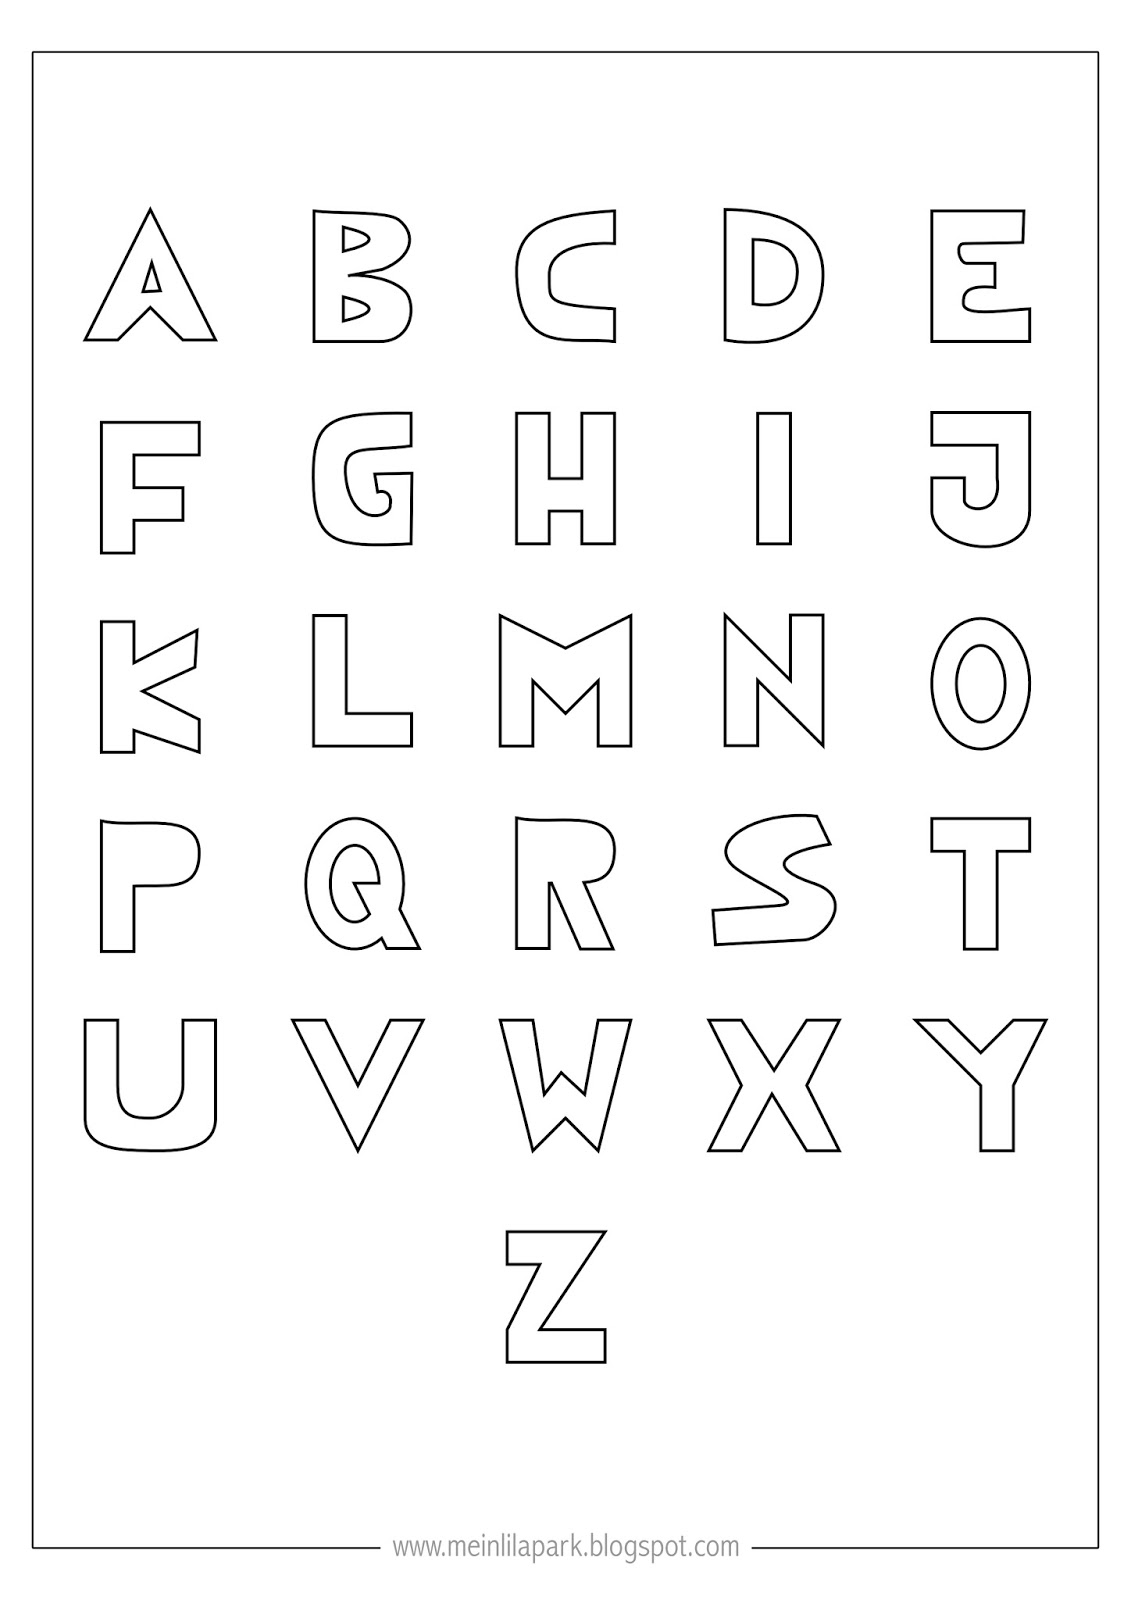 free coloring letters free printable coloring alphabet letters ausdruckbares coloring free letters